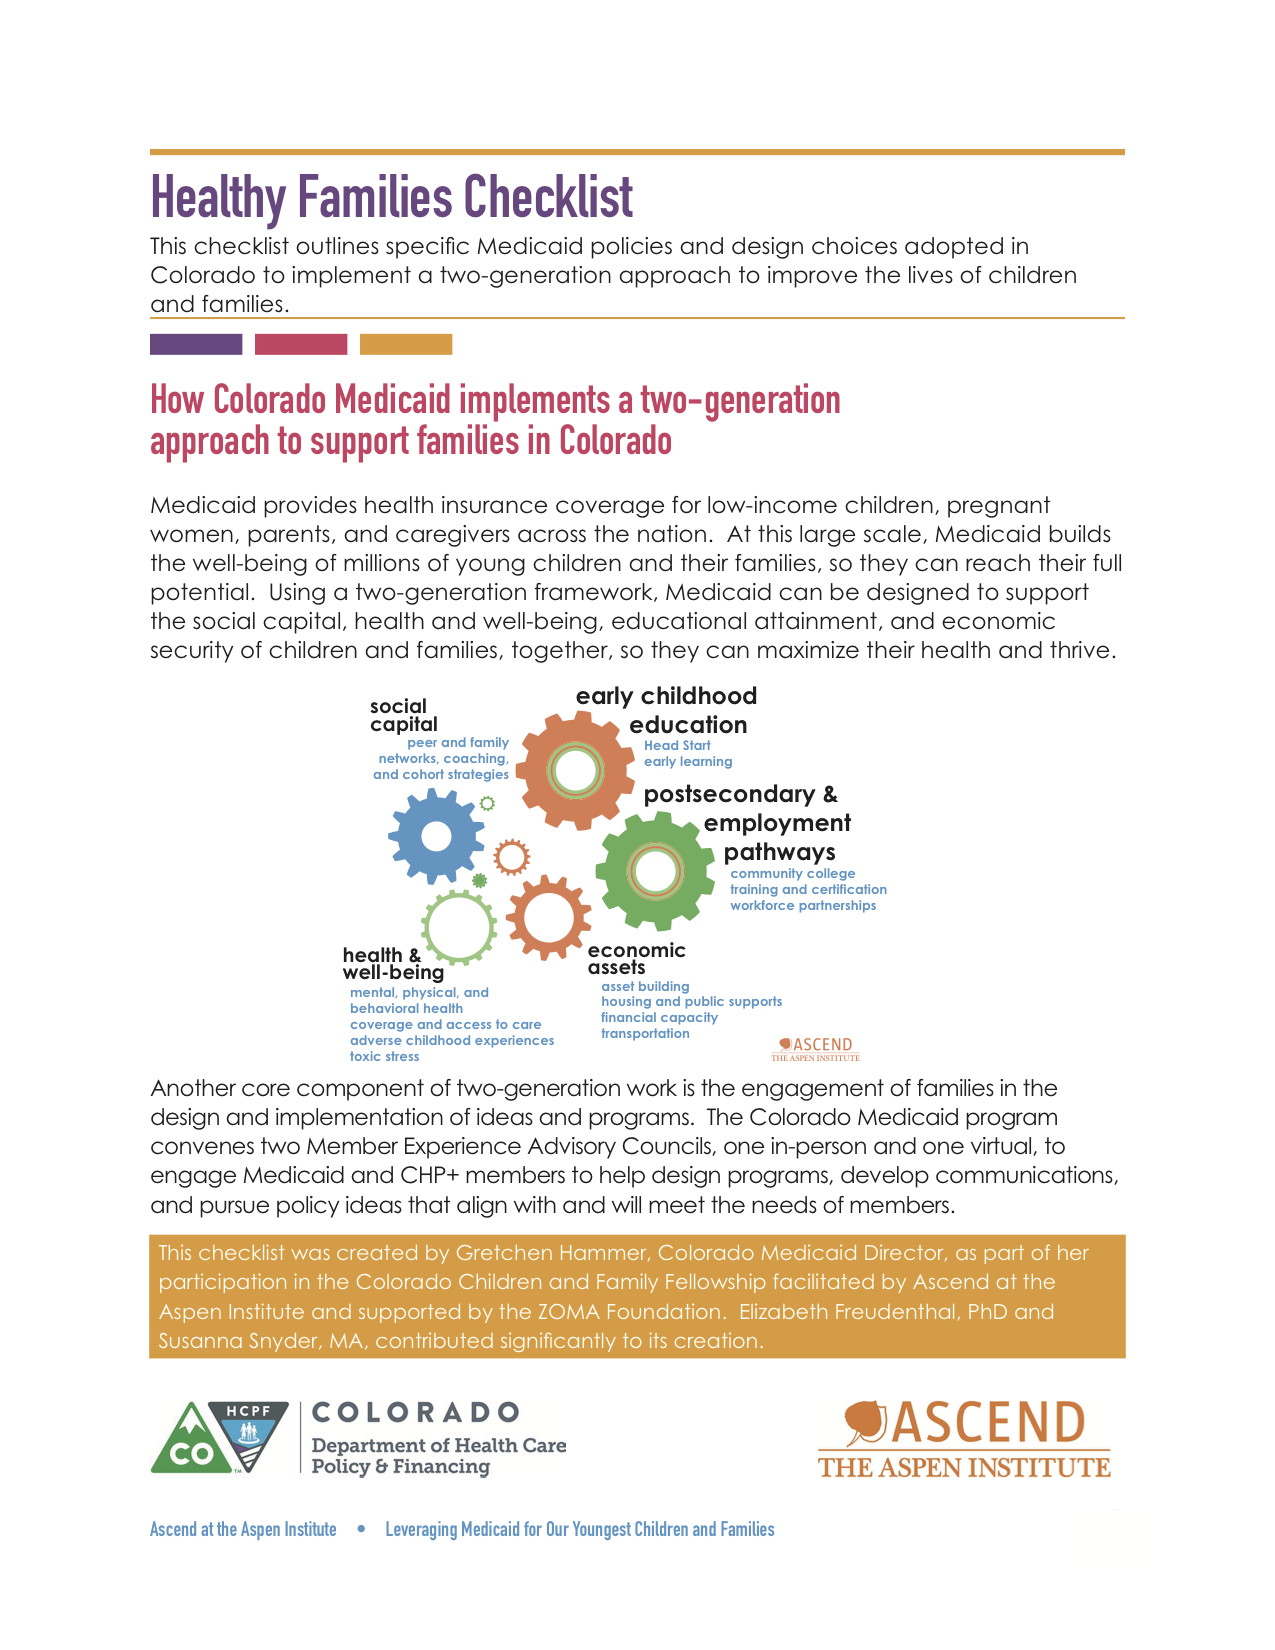 Healthy Families Checklist | Ascend at the Aspen Institute